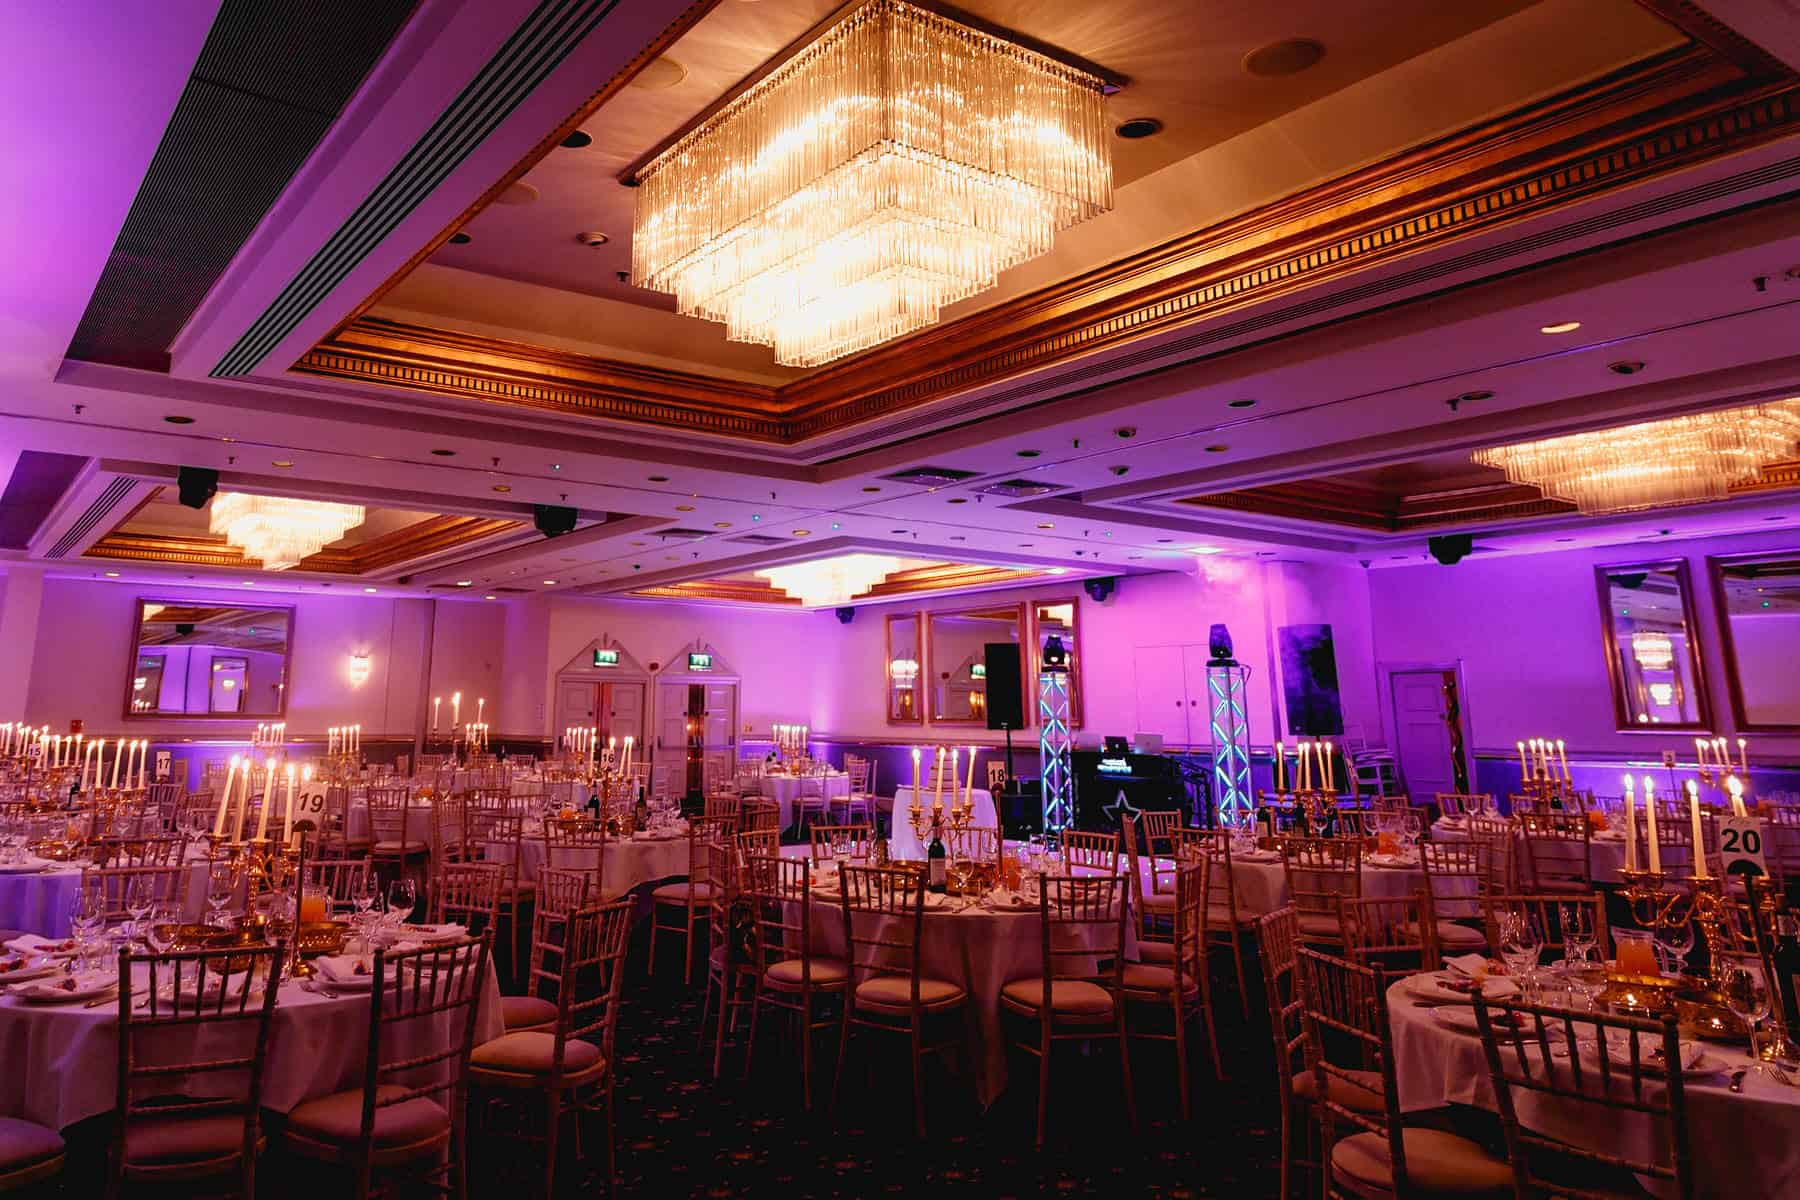 Indian Weddings At The Millennium Gloucester London